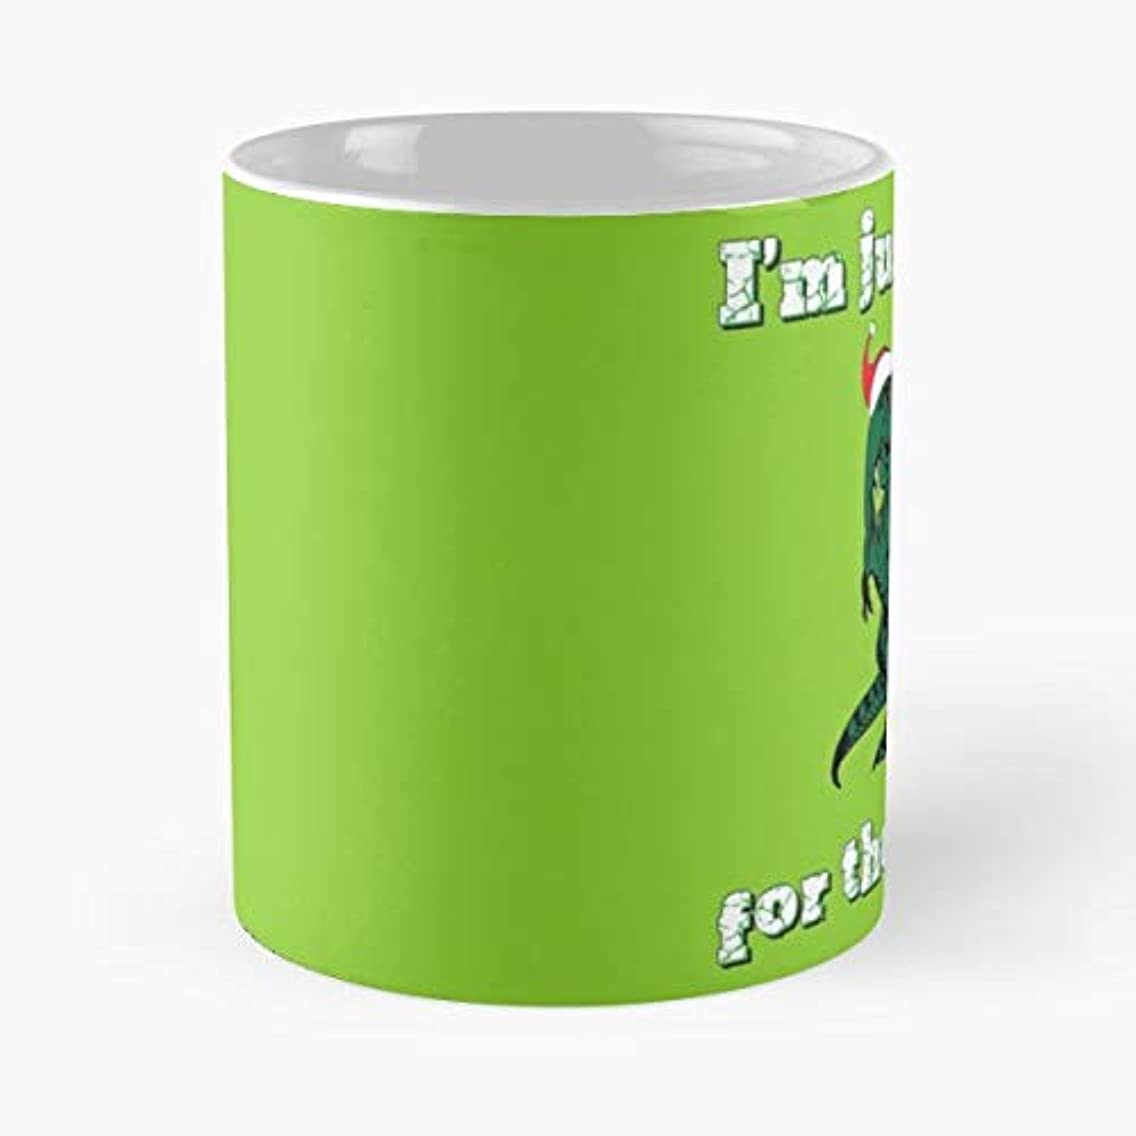 Funny T Rex Dinosaur Santa Hat Food Merry Christmas Xmas Elf - 11 Oz Coffee Mugs Unique Ceramic Novelty Cup, The Best Gift For Christmas.